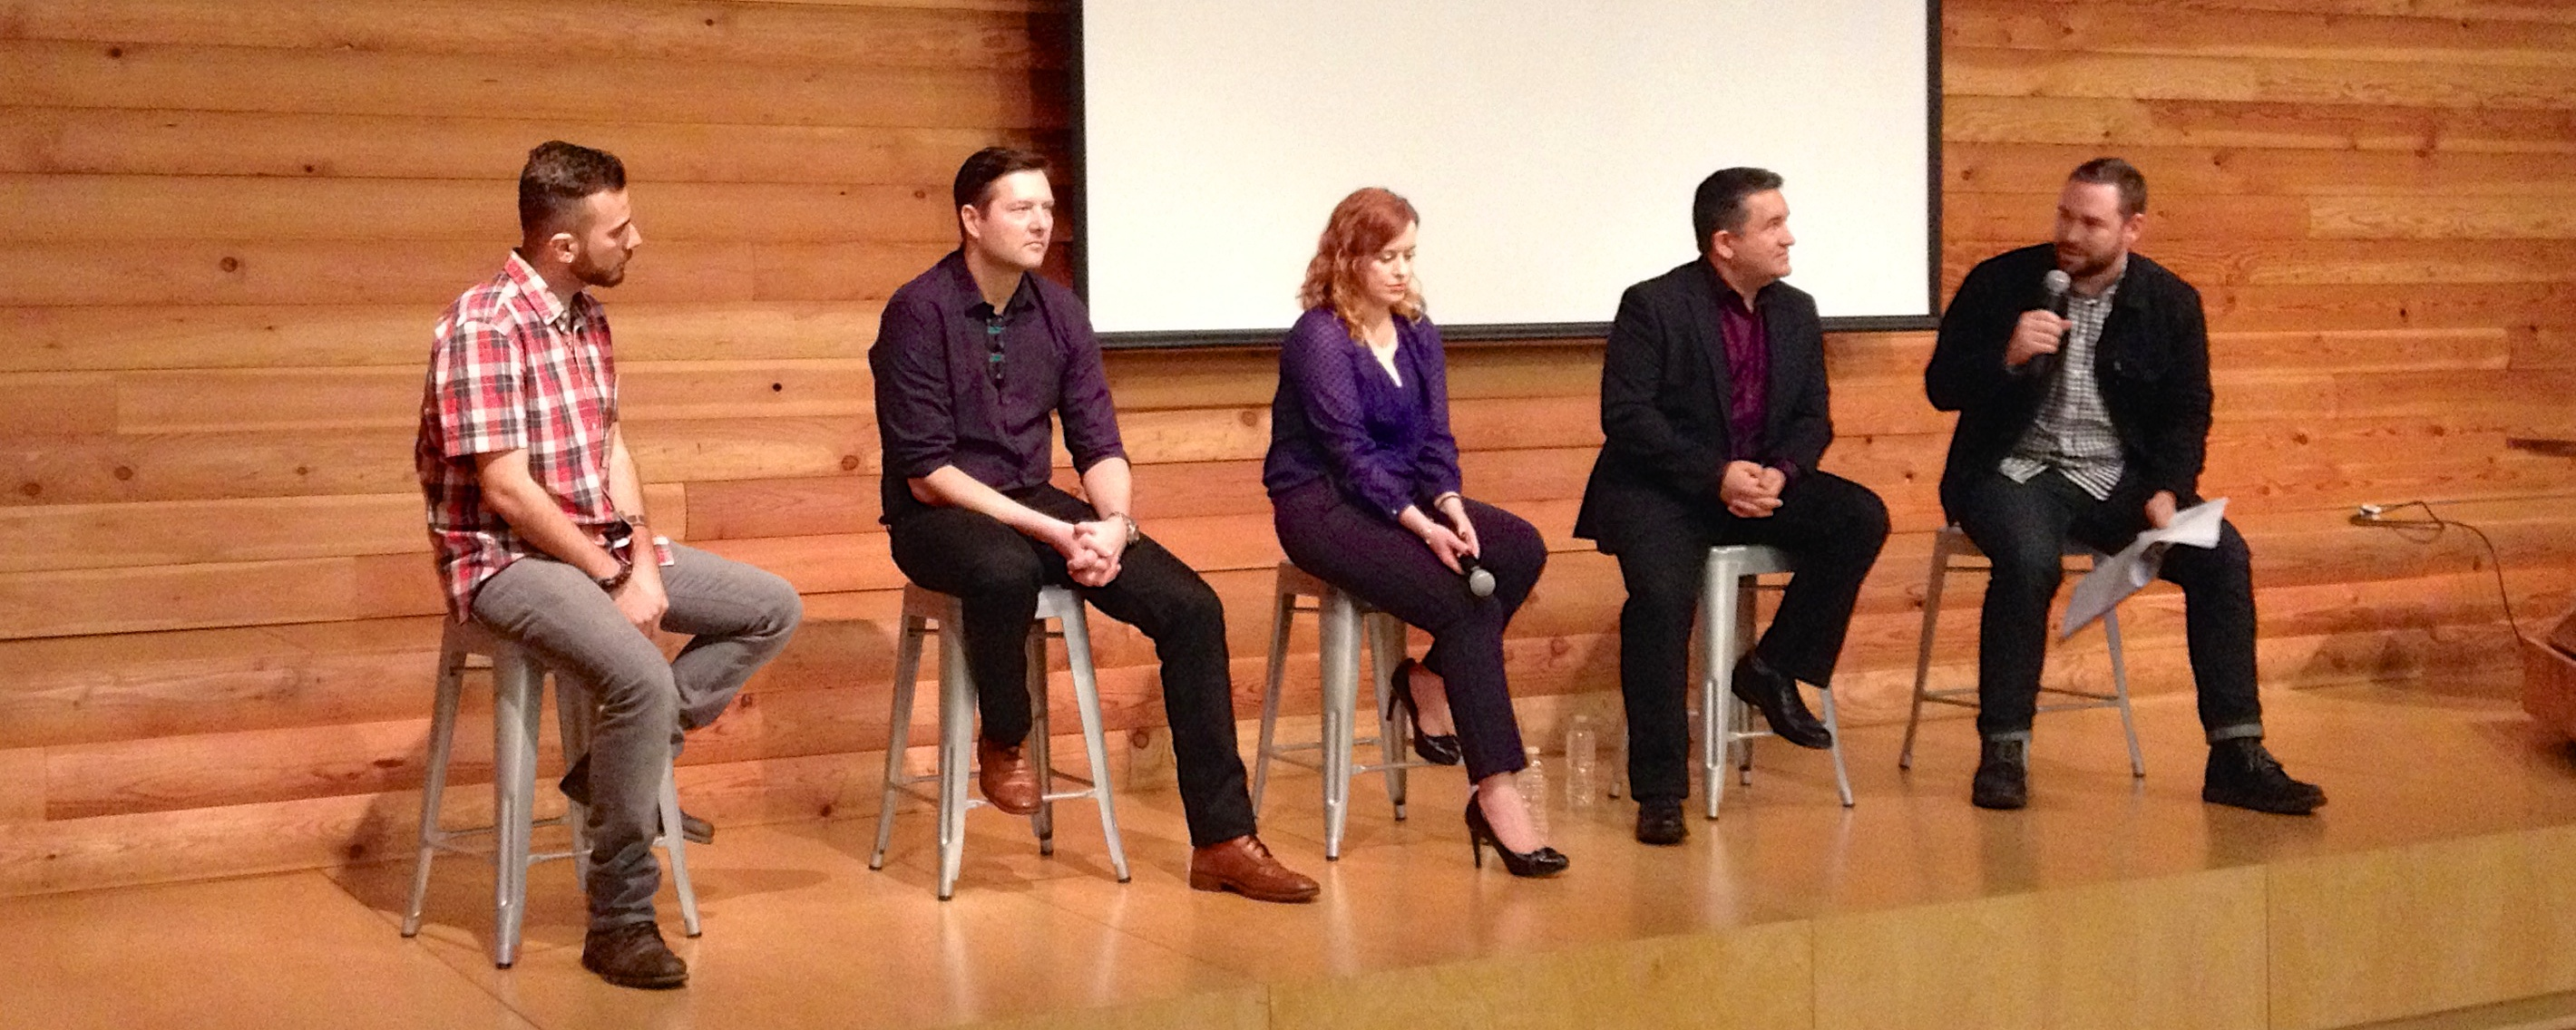 Panelists at the #TellEveryone event in Vancouver